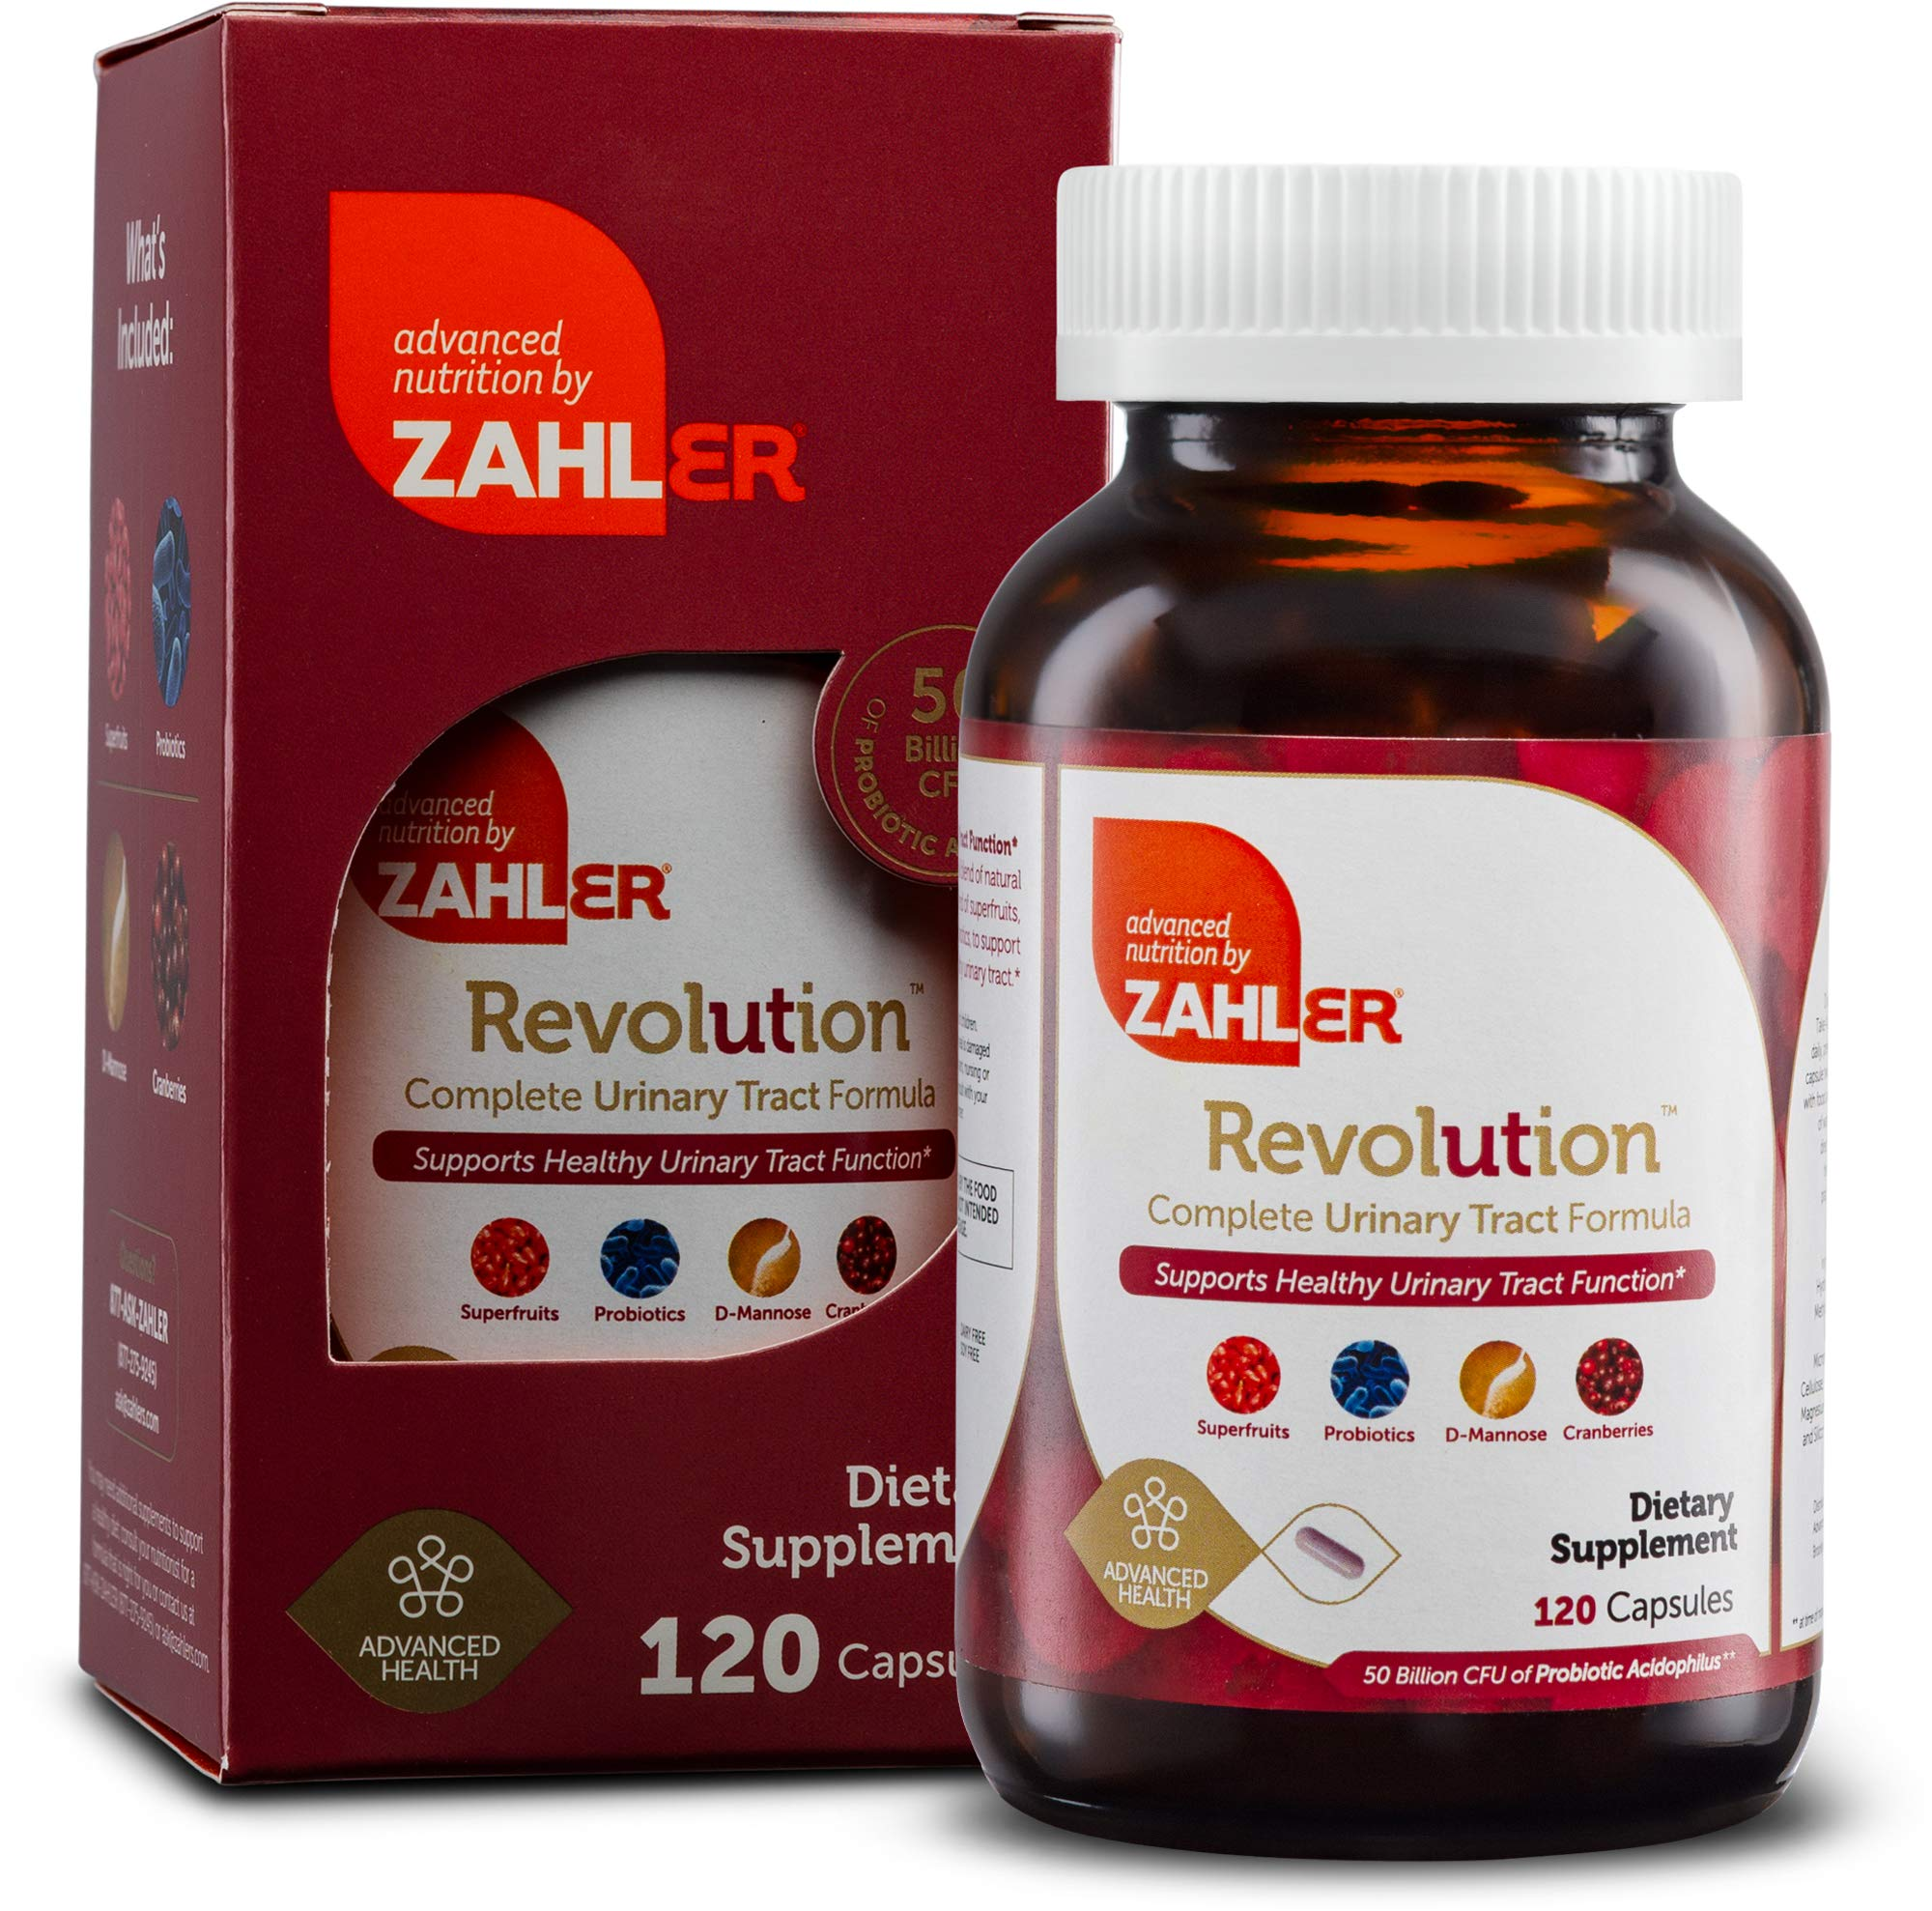 Zahlers UTI Revolution, Urinary Tract and Bladder Health, Cranberry Concentrate Pills Fortified with D-Mannose and Probiotics, Certified Kosher,120 Capsules by Advanced Nutrition by Zahler